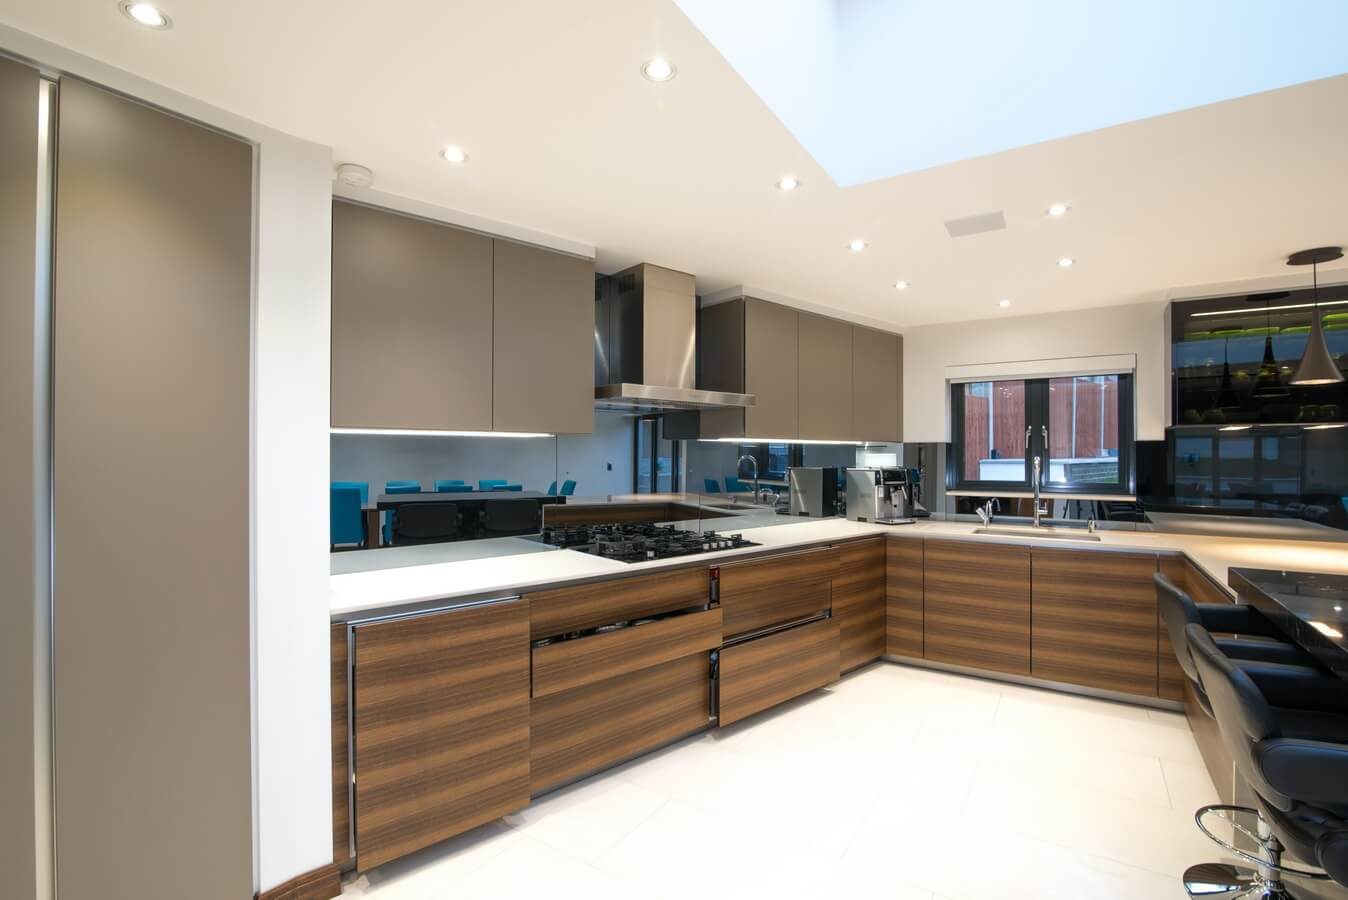 german kitchens west london. north-london-german-kitchen-3.jpg german kitchens west london